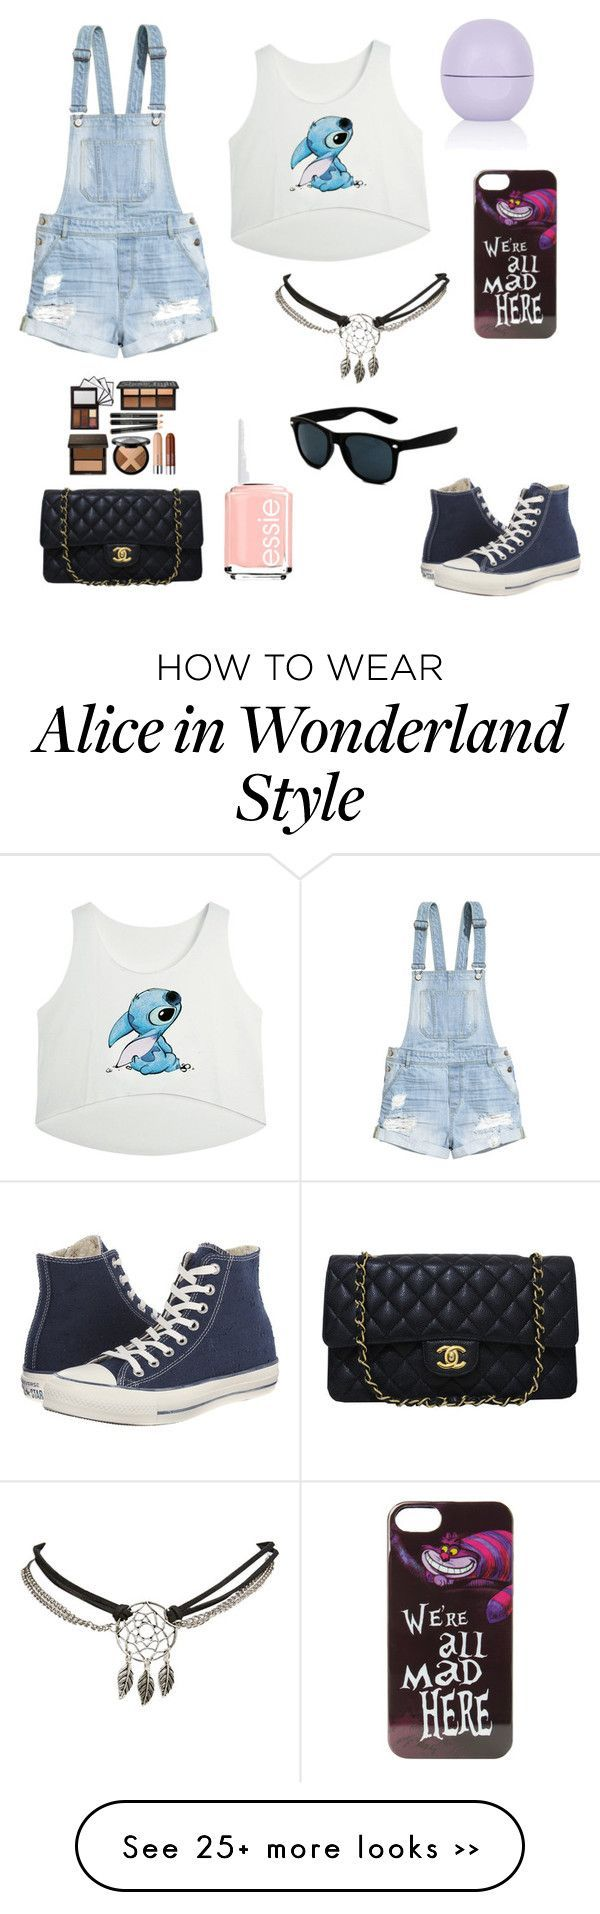 The day at Disney by vcndancebattle on Polyvore featuring HM, Converse, Disney, Wet Seal, Chanel, Topshop and Essie